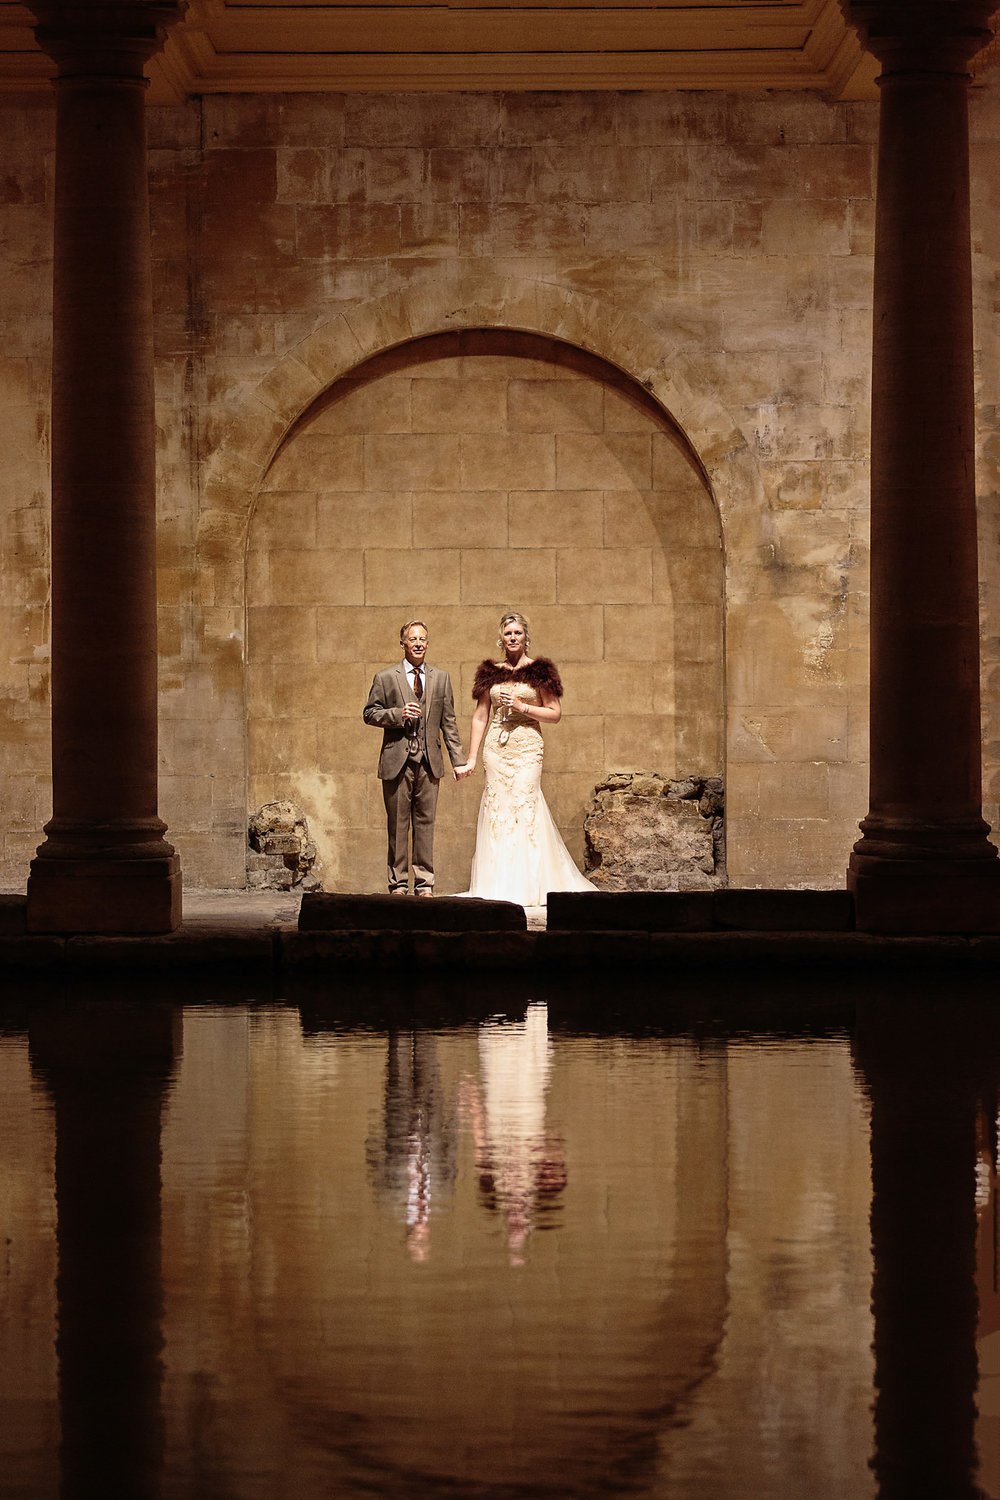 Wedding photography at the Roman Baths in Bath